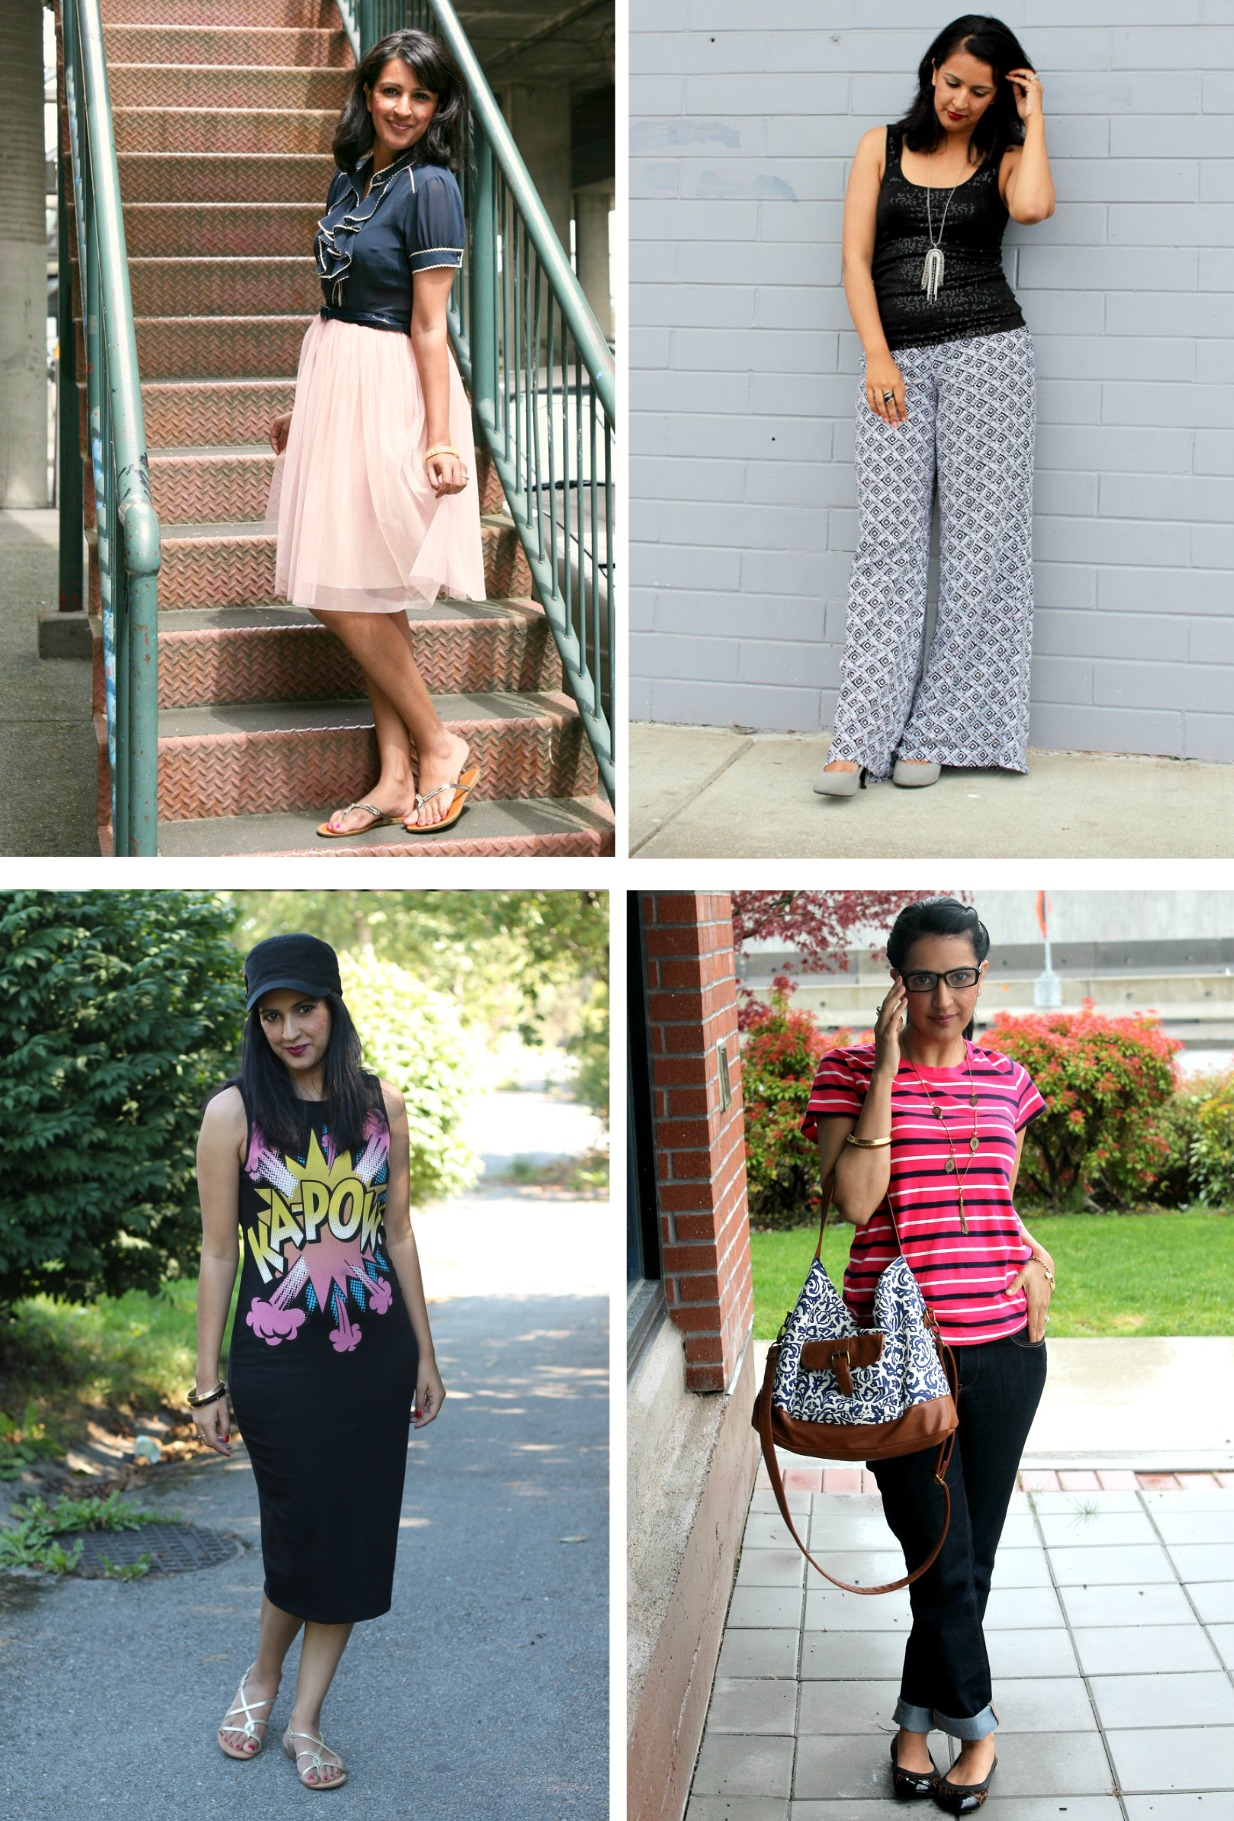 20 outfit ideas for spring and summer